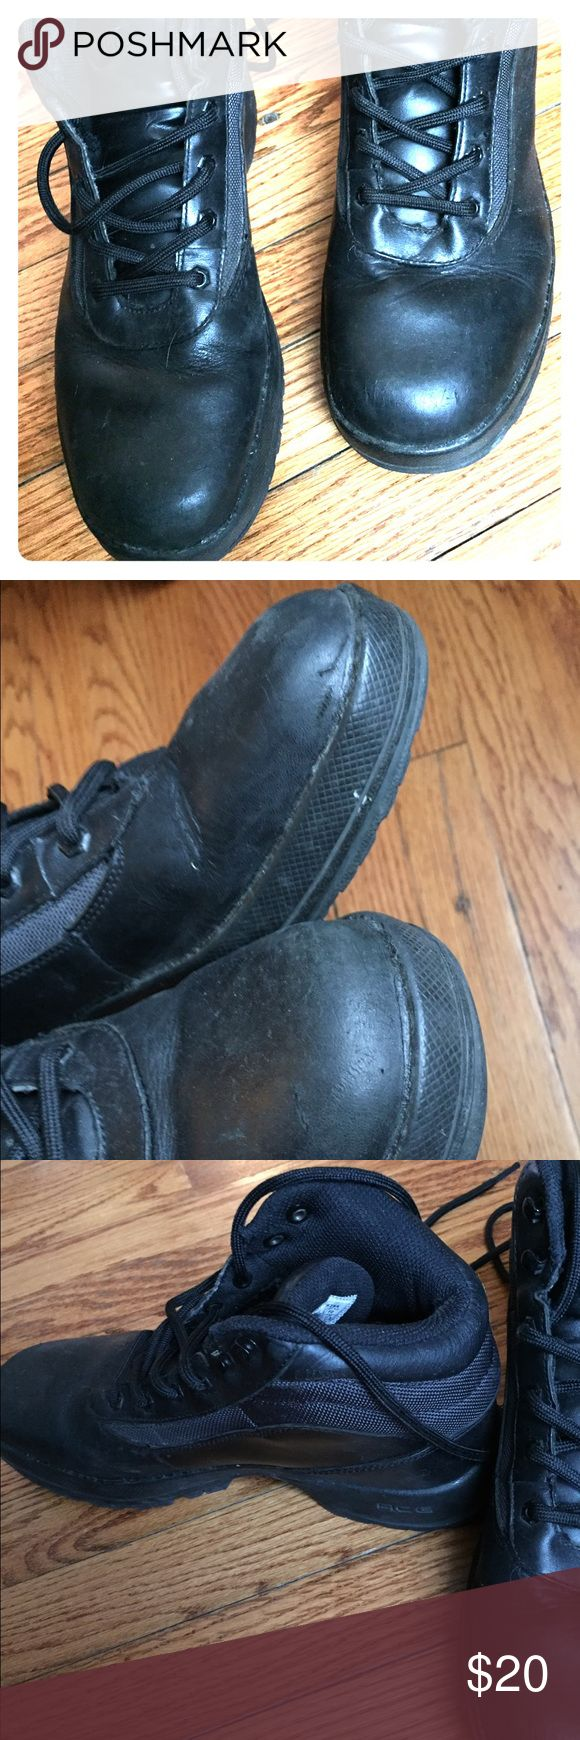 NIKE Boots Men's NIKE black boots. Pre-loved and scratch on front of left shoe. See pics. Ask any questions. Smoke free home. Nike Shoes Boots